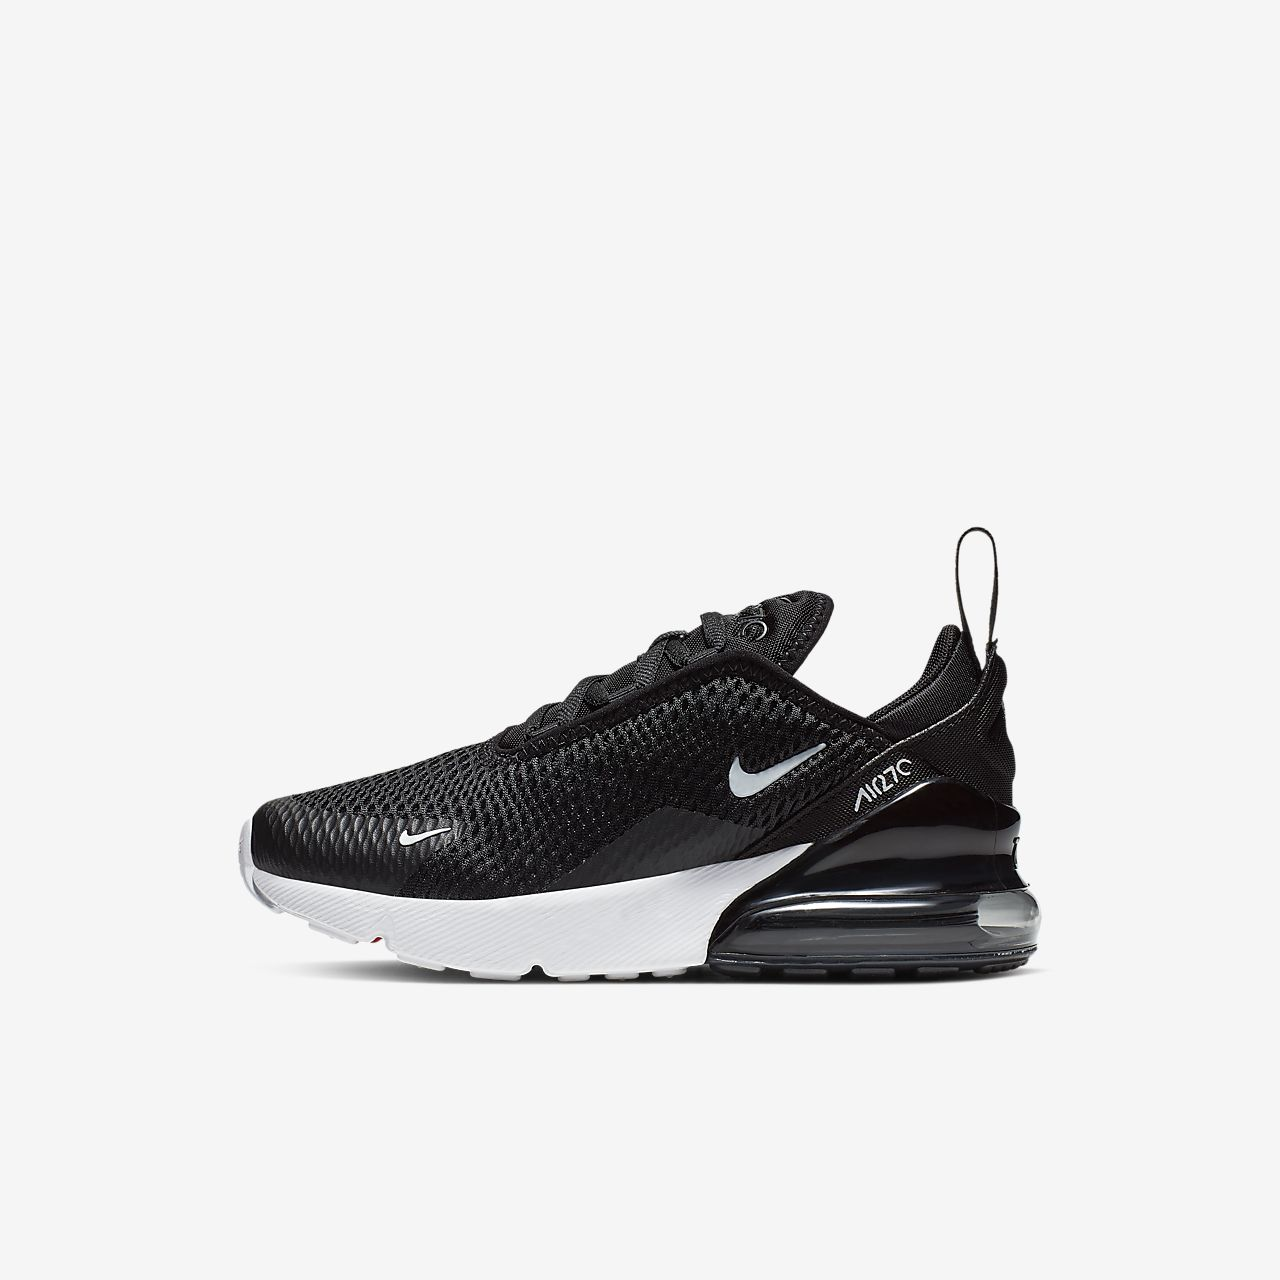 on sale 375d7 8413d ... Scarpa Nike Air Max 270 - Bambini